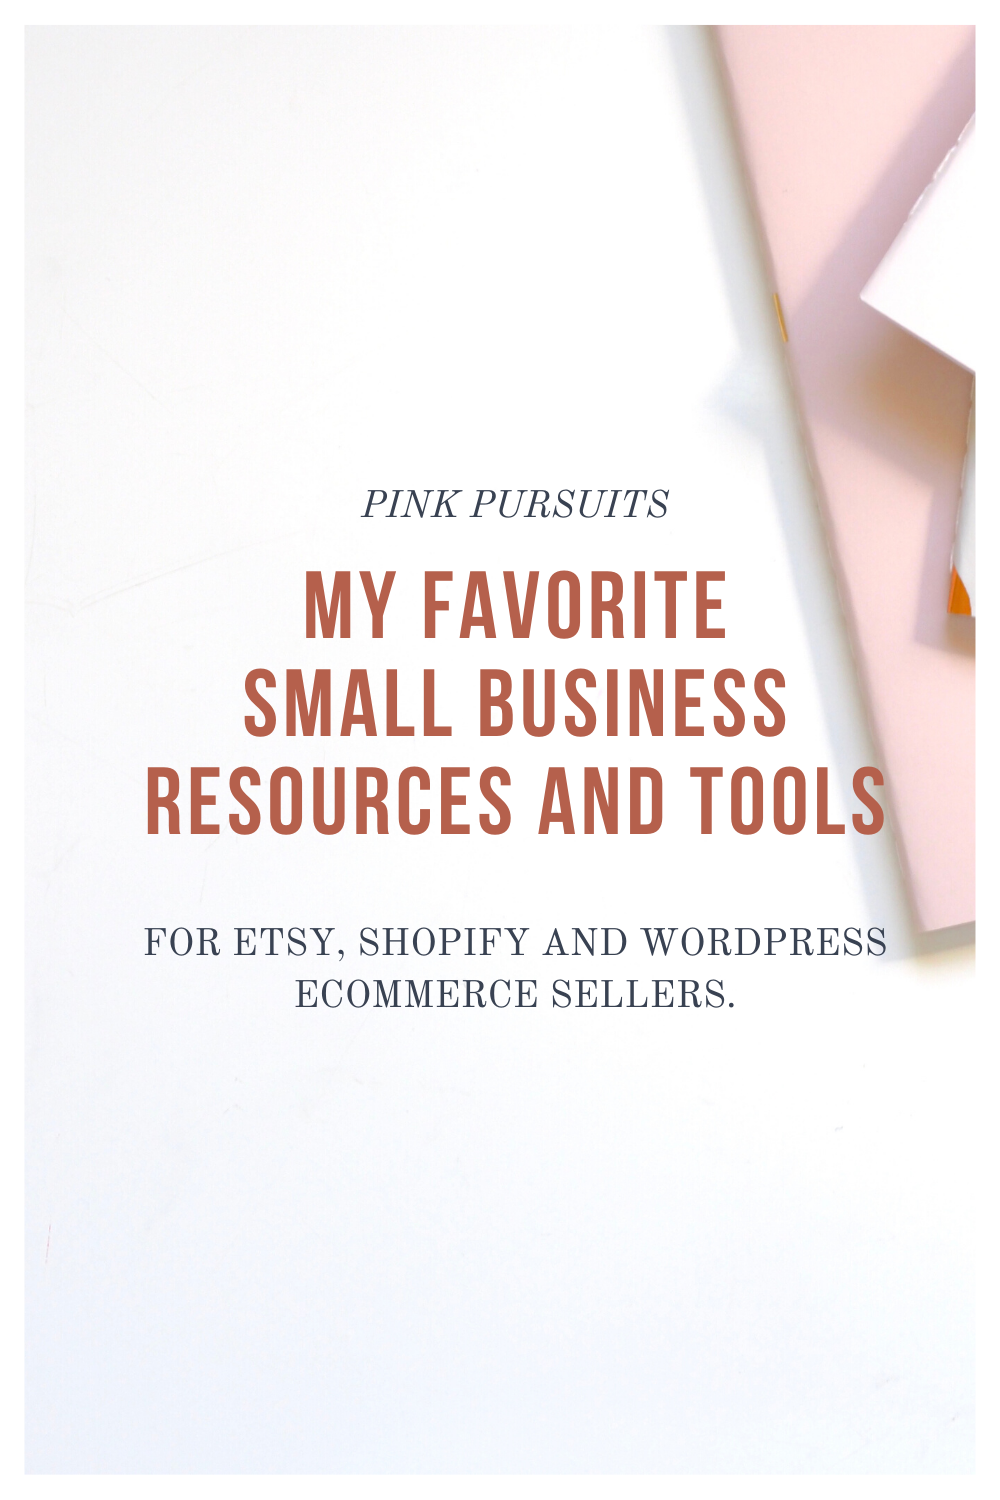 Resources and Tools for Side Business Owners